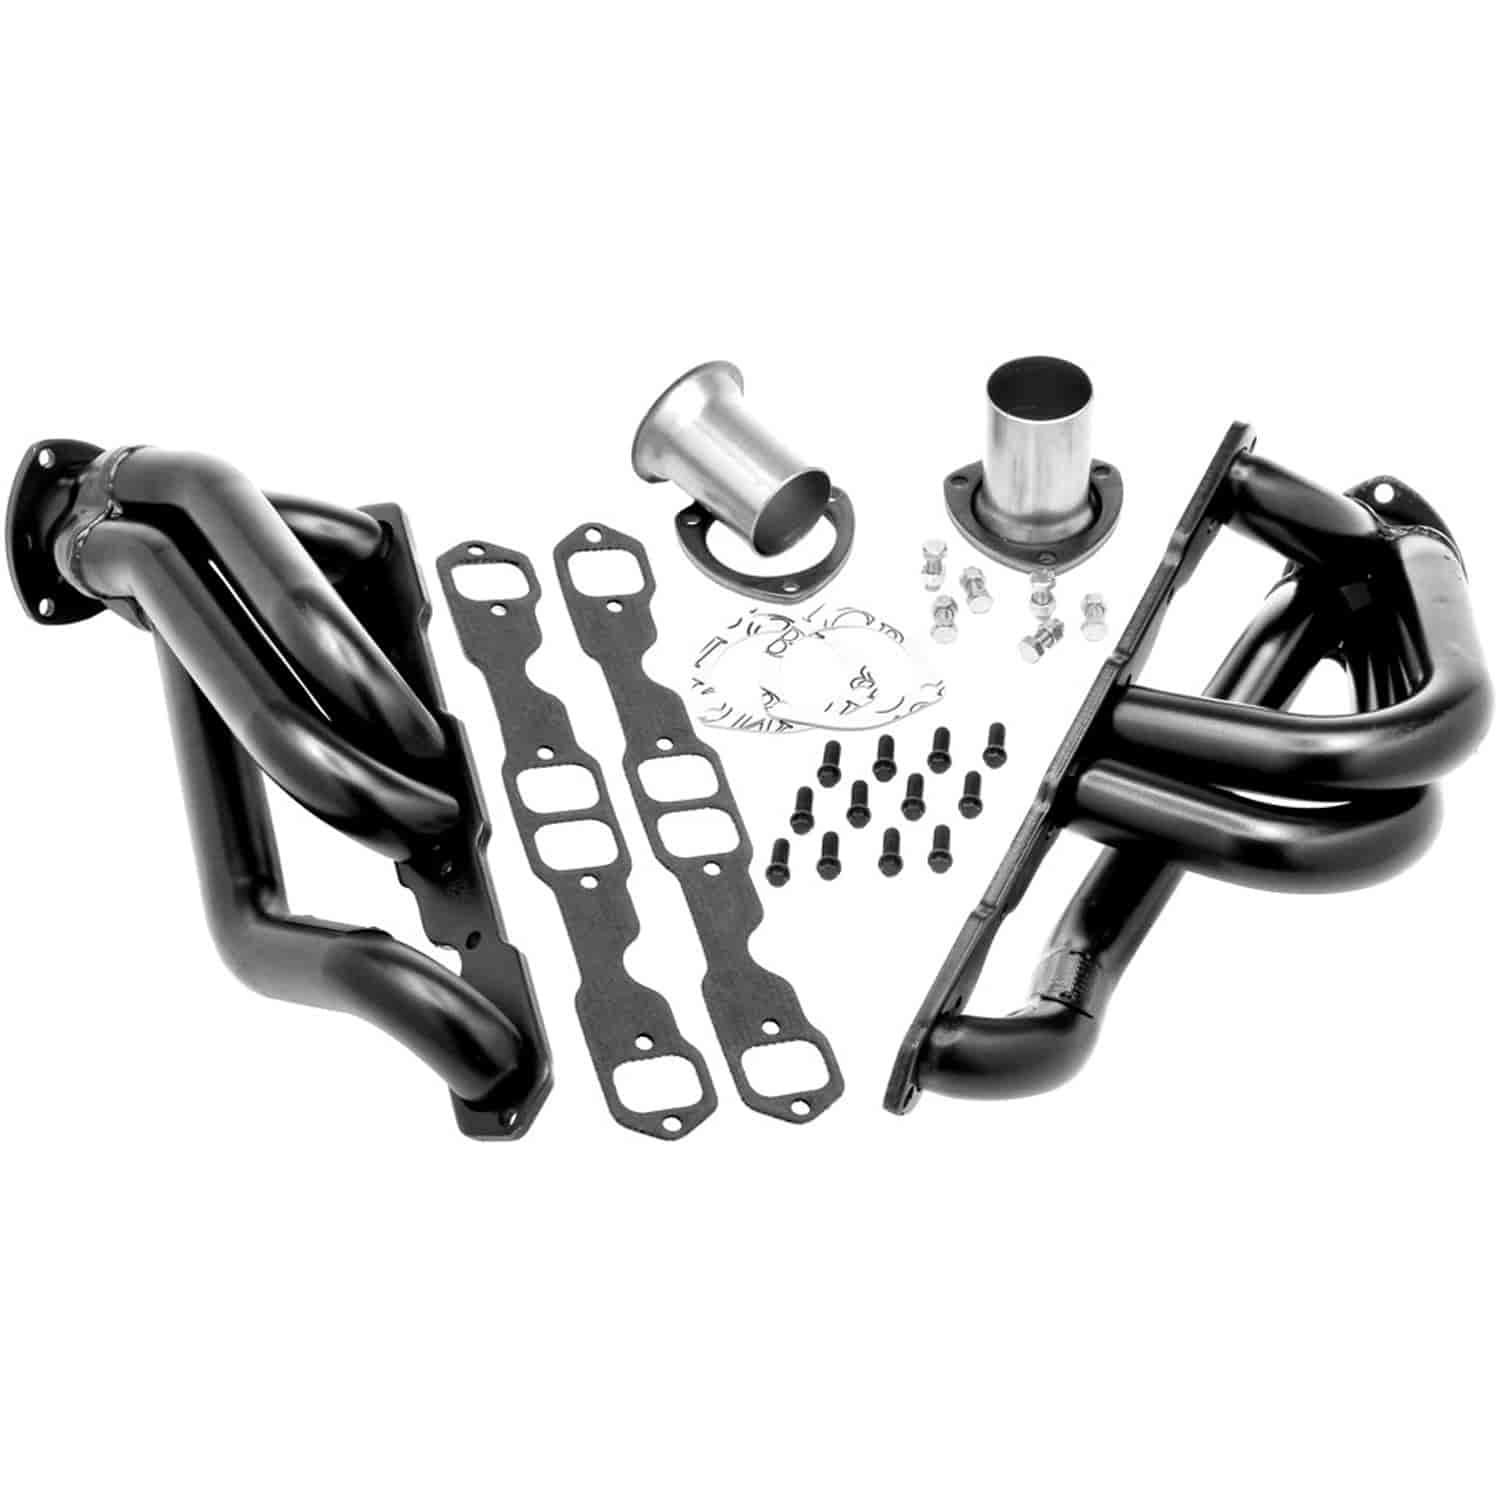 Hedman 69530 Engine Swap Headers 1982 2000 S10 With Sbc Jegs Chevy Tail Light Wiring Harness Cap